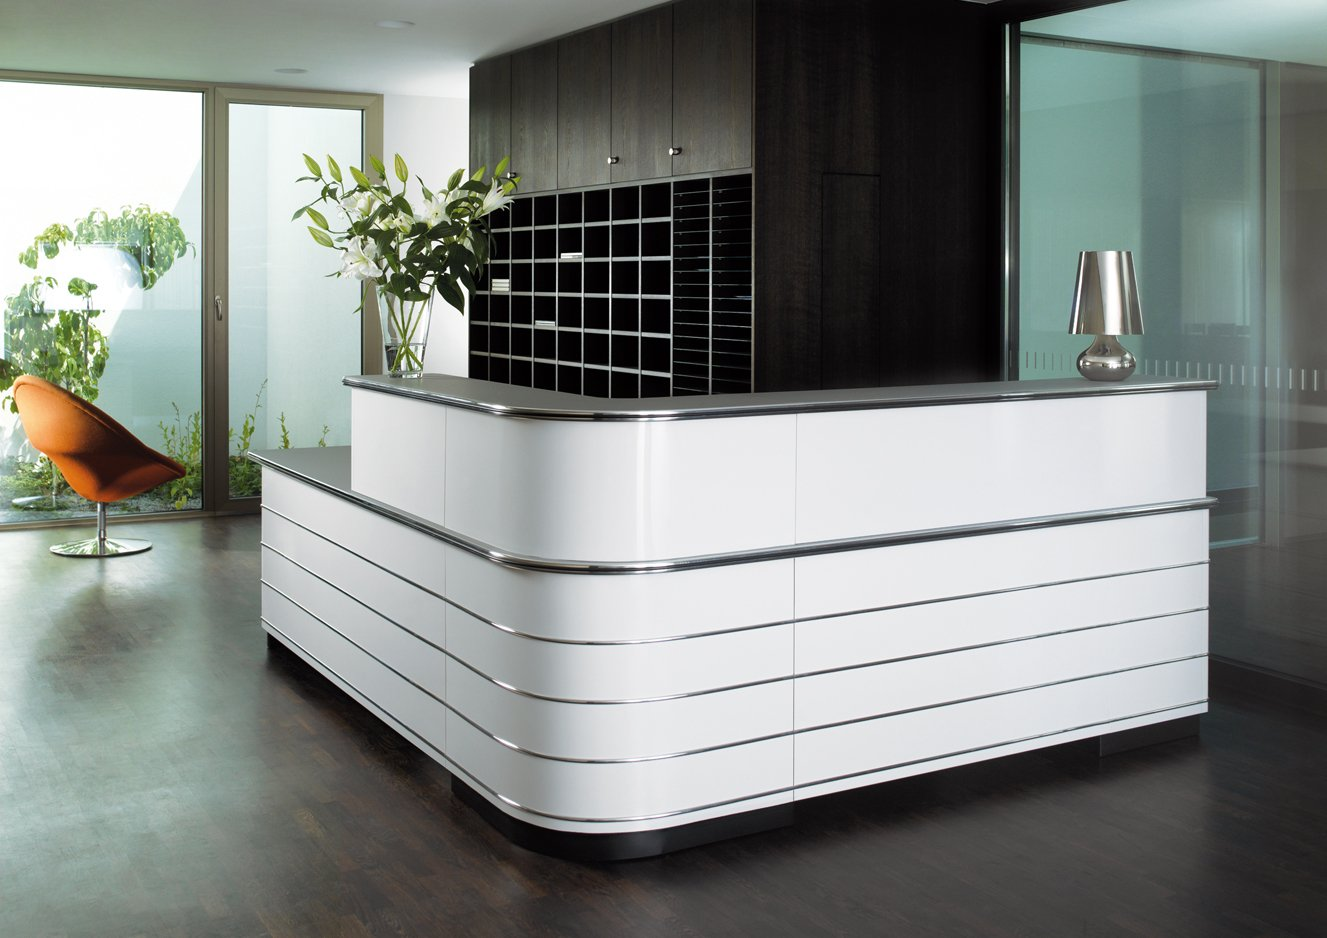 Counter Reception Desk from Muller